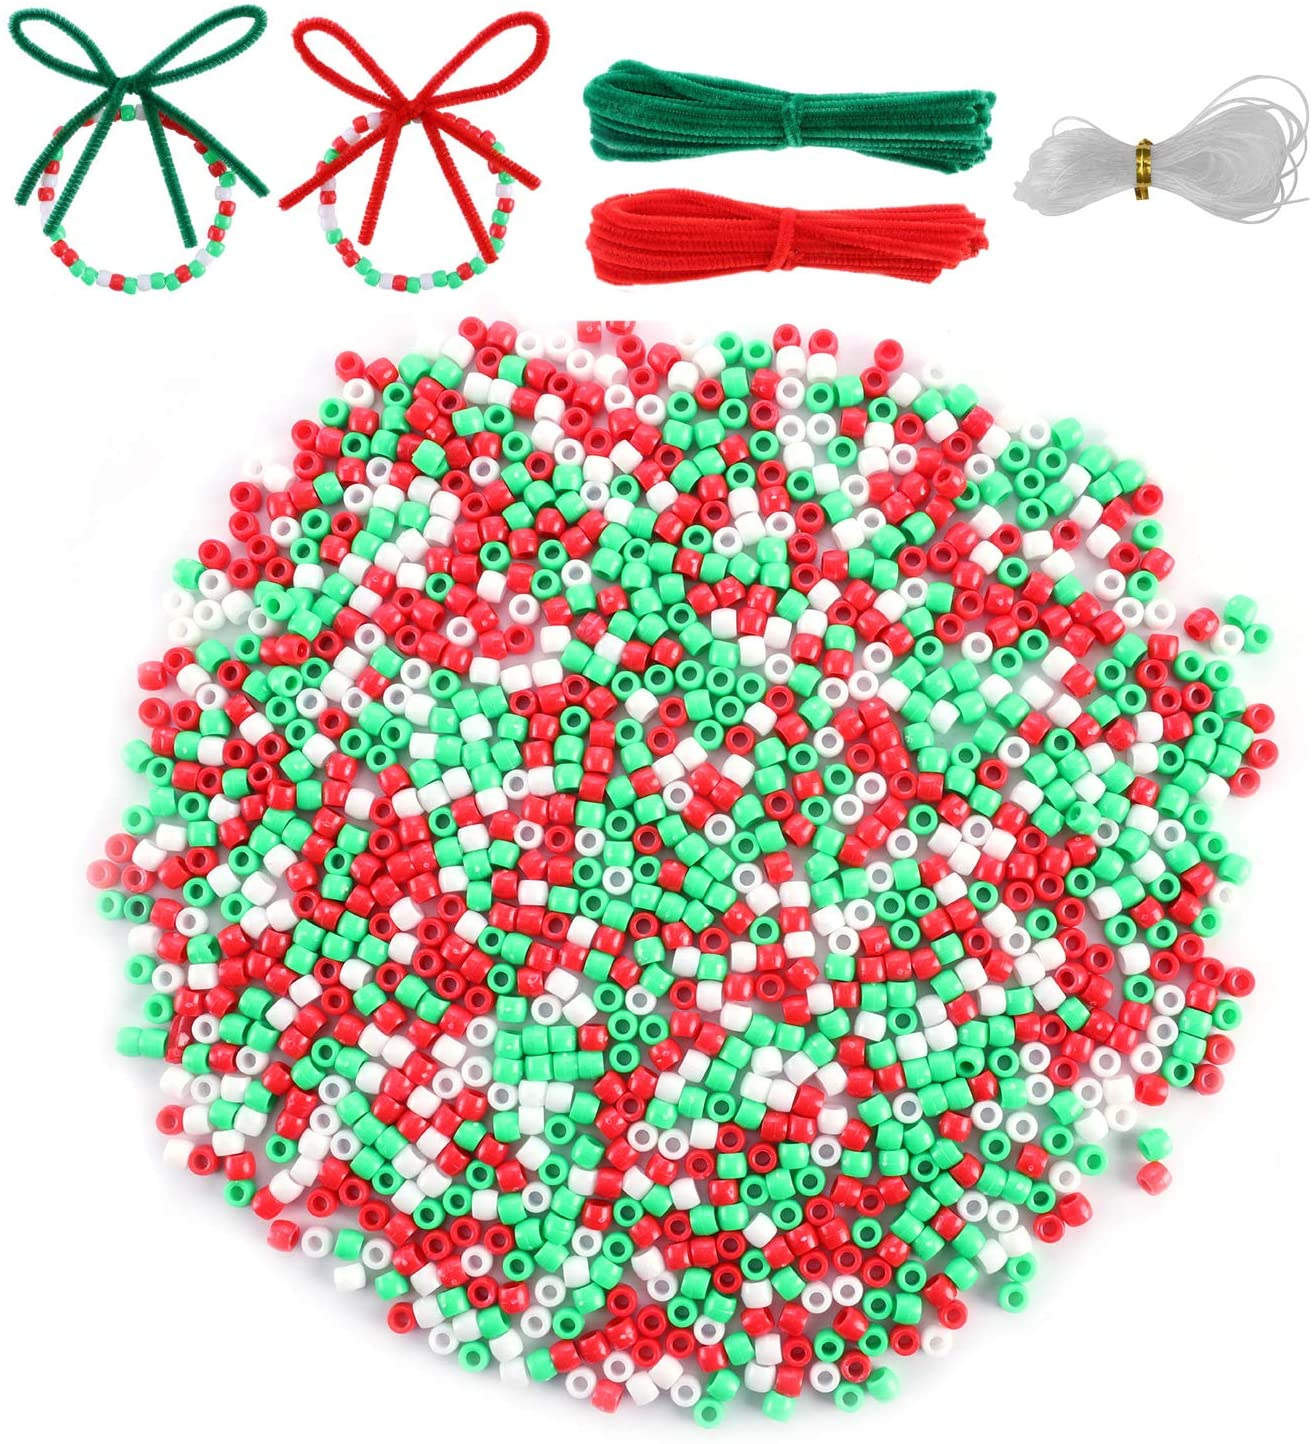 Christmas Pony Beads, 1200pcs Plastic Pony Beads Assorted Opaque Craft Beads Christmas Round Beads for DIY Bracelet Necklace Key Chains Jewelry Making Craft Decorations, with Bead Twine&Chenille Stems